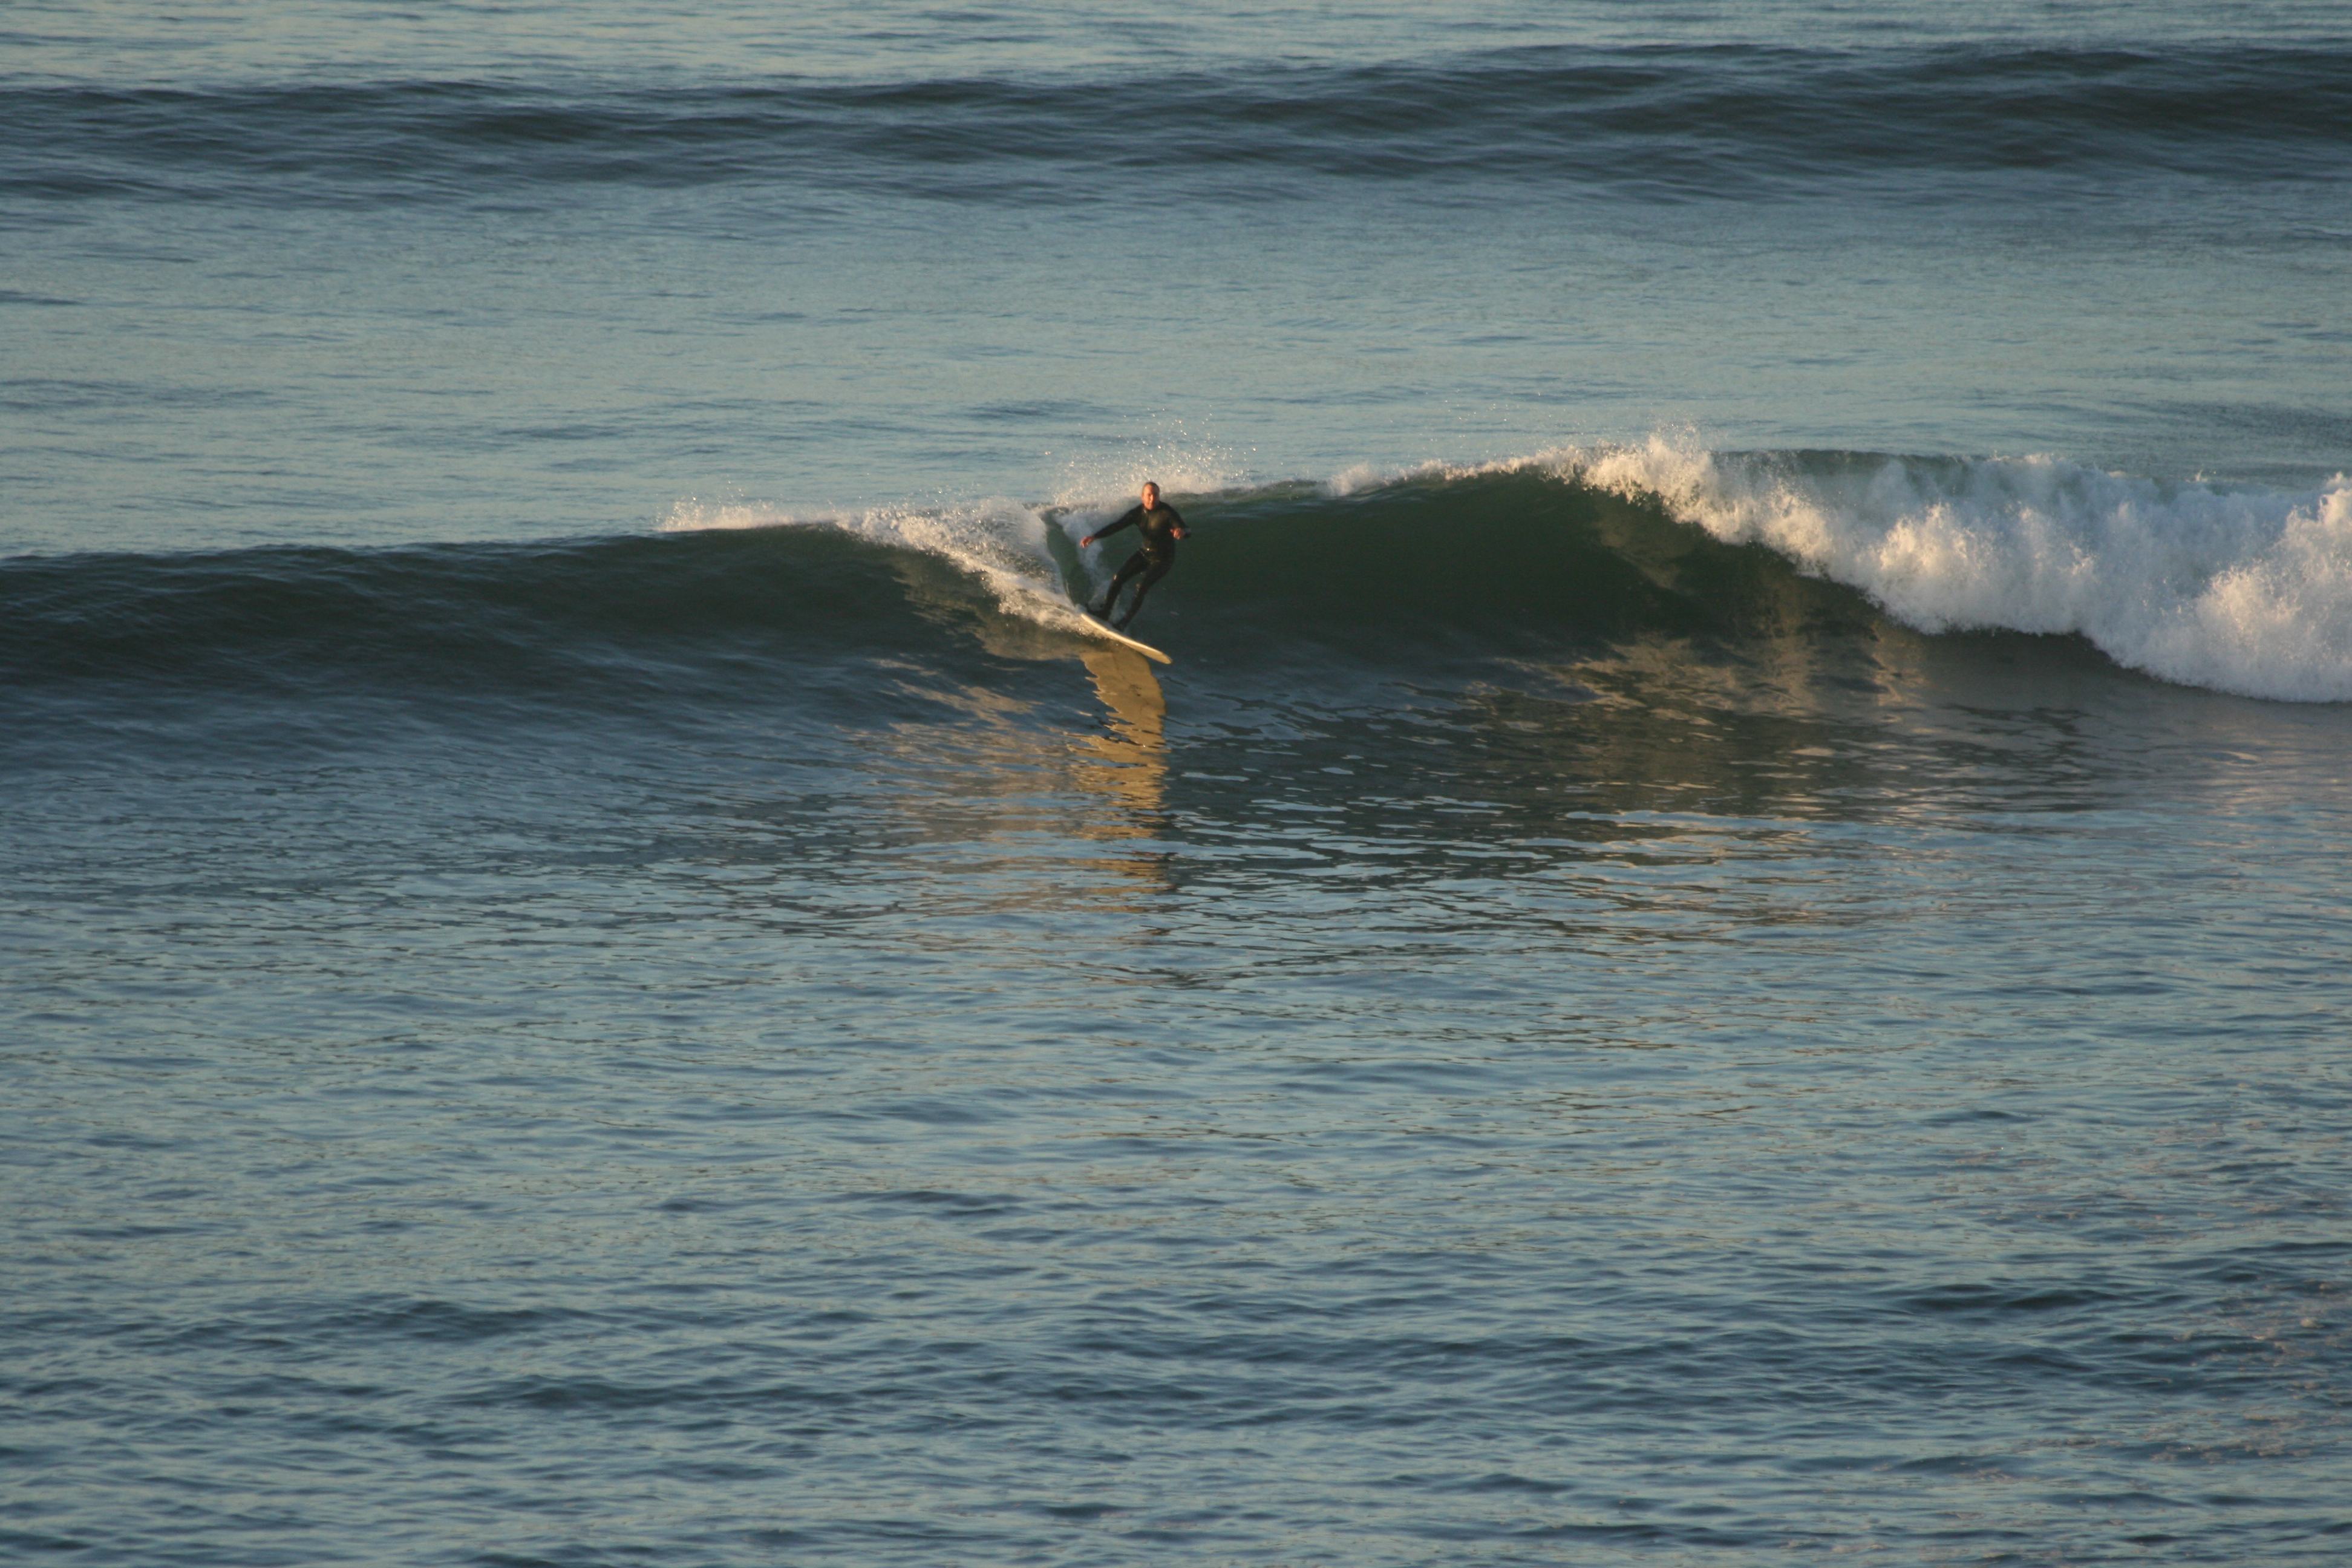 Surf Report Tuesday Night Surf Forecast 8 30 Pm For